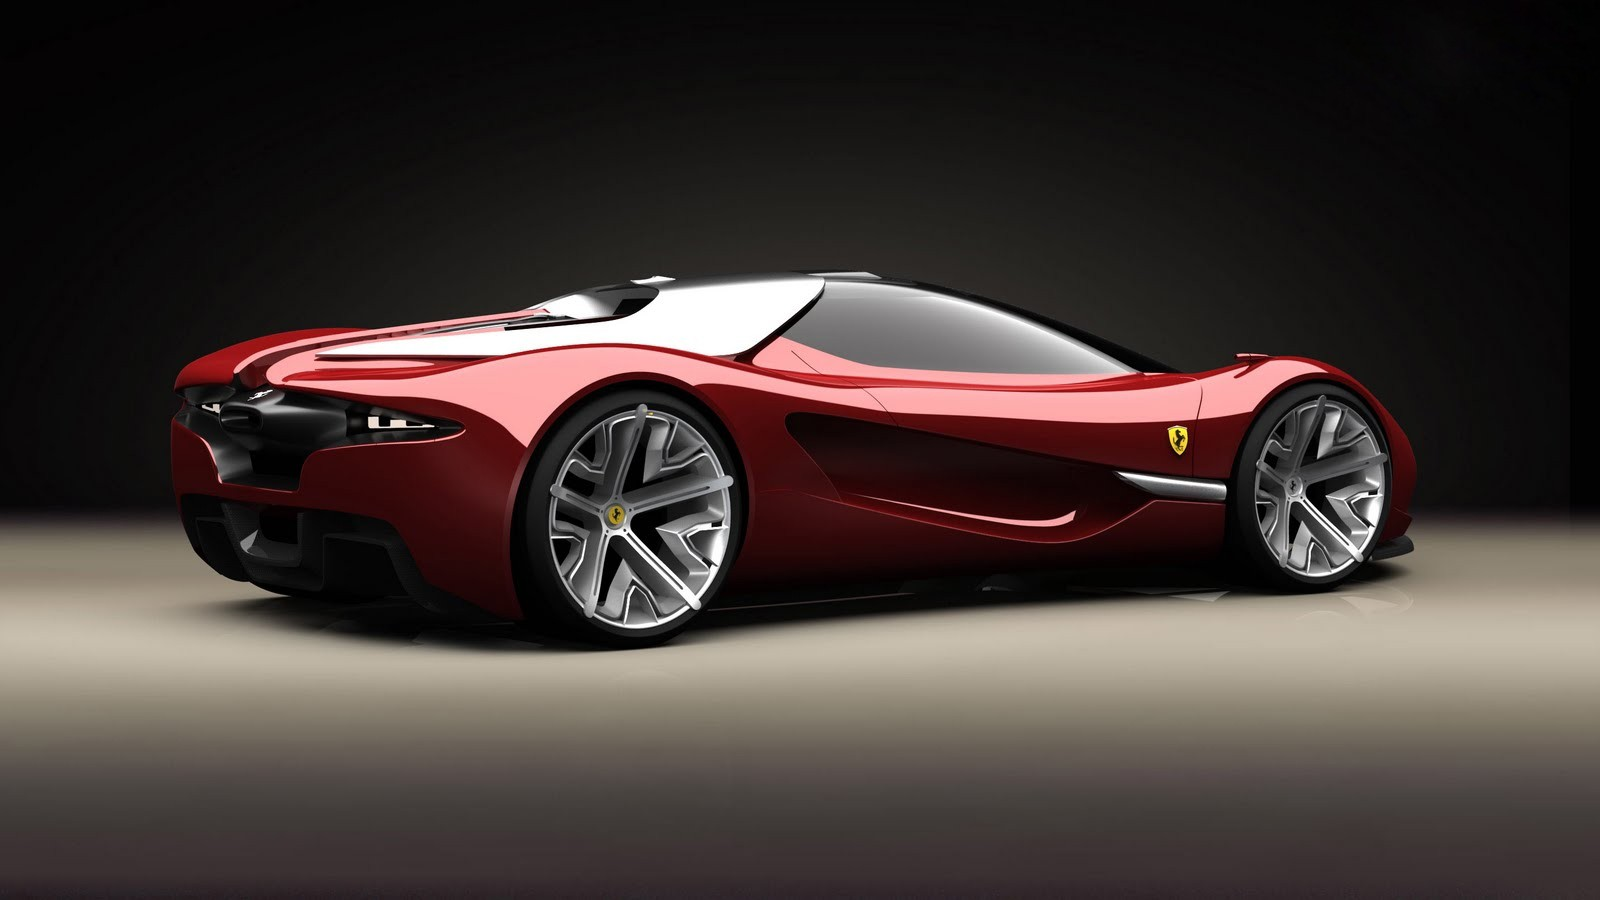 Ferrari Supercars Wallpaper 1600x900 Ferrari Supercars Concept Cars 1600x900